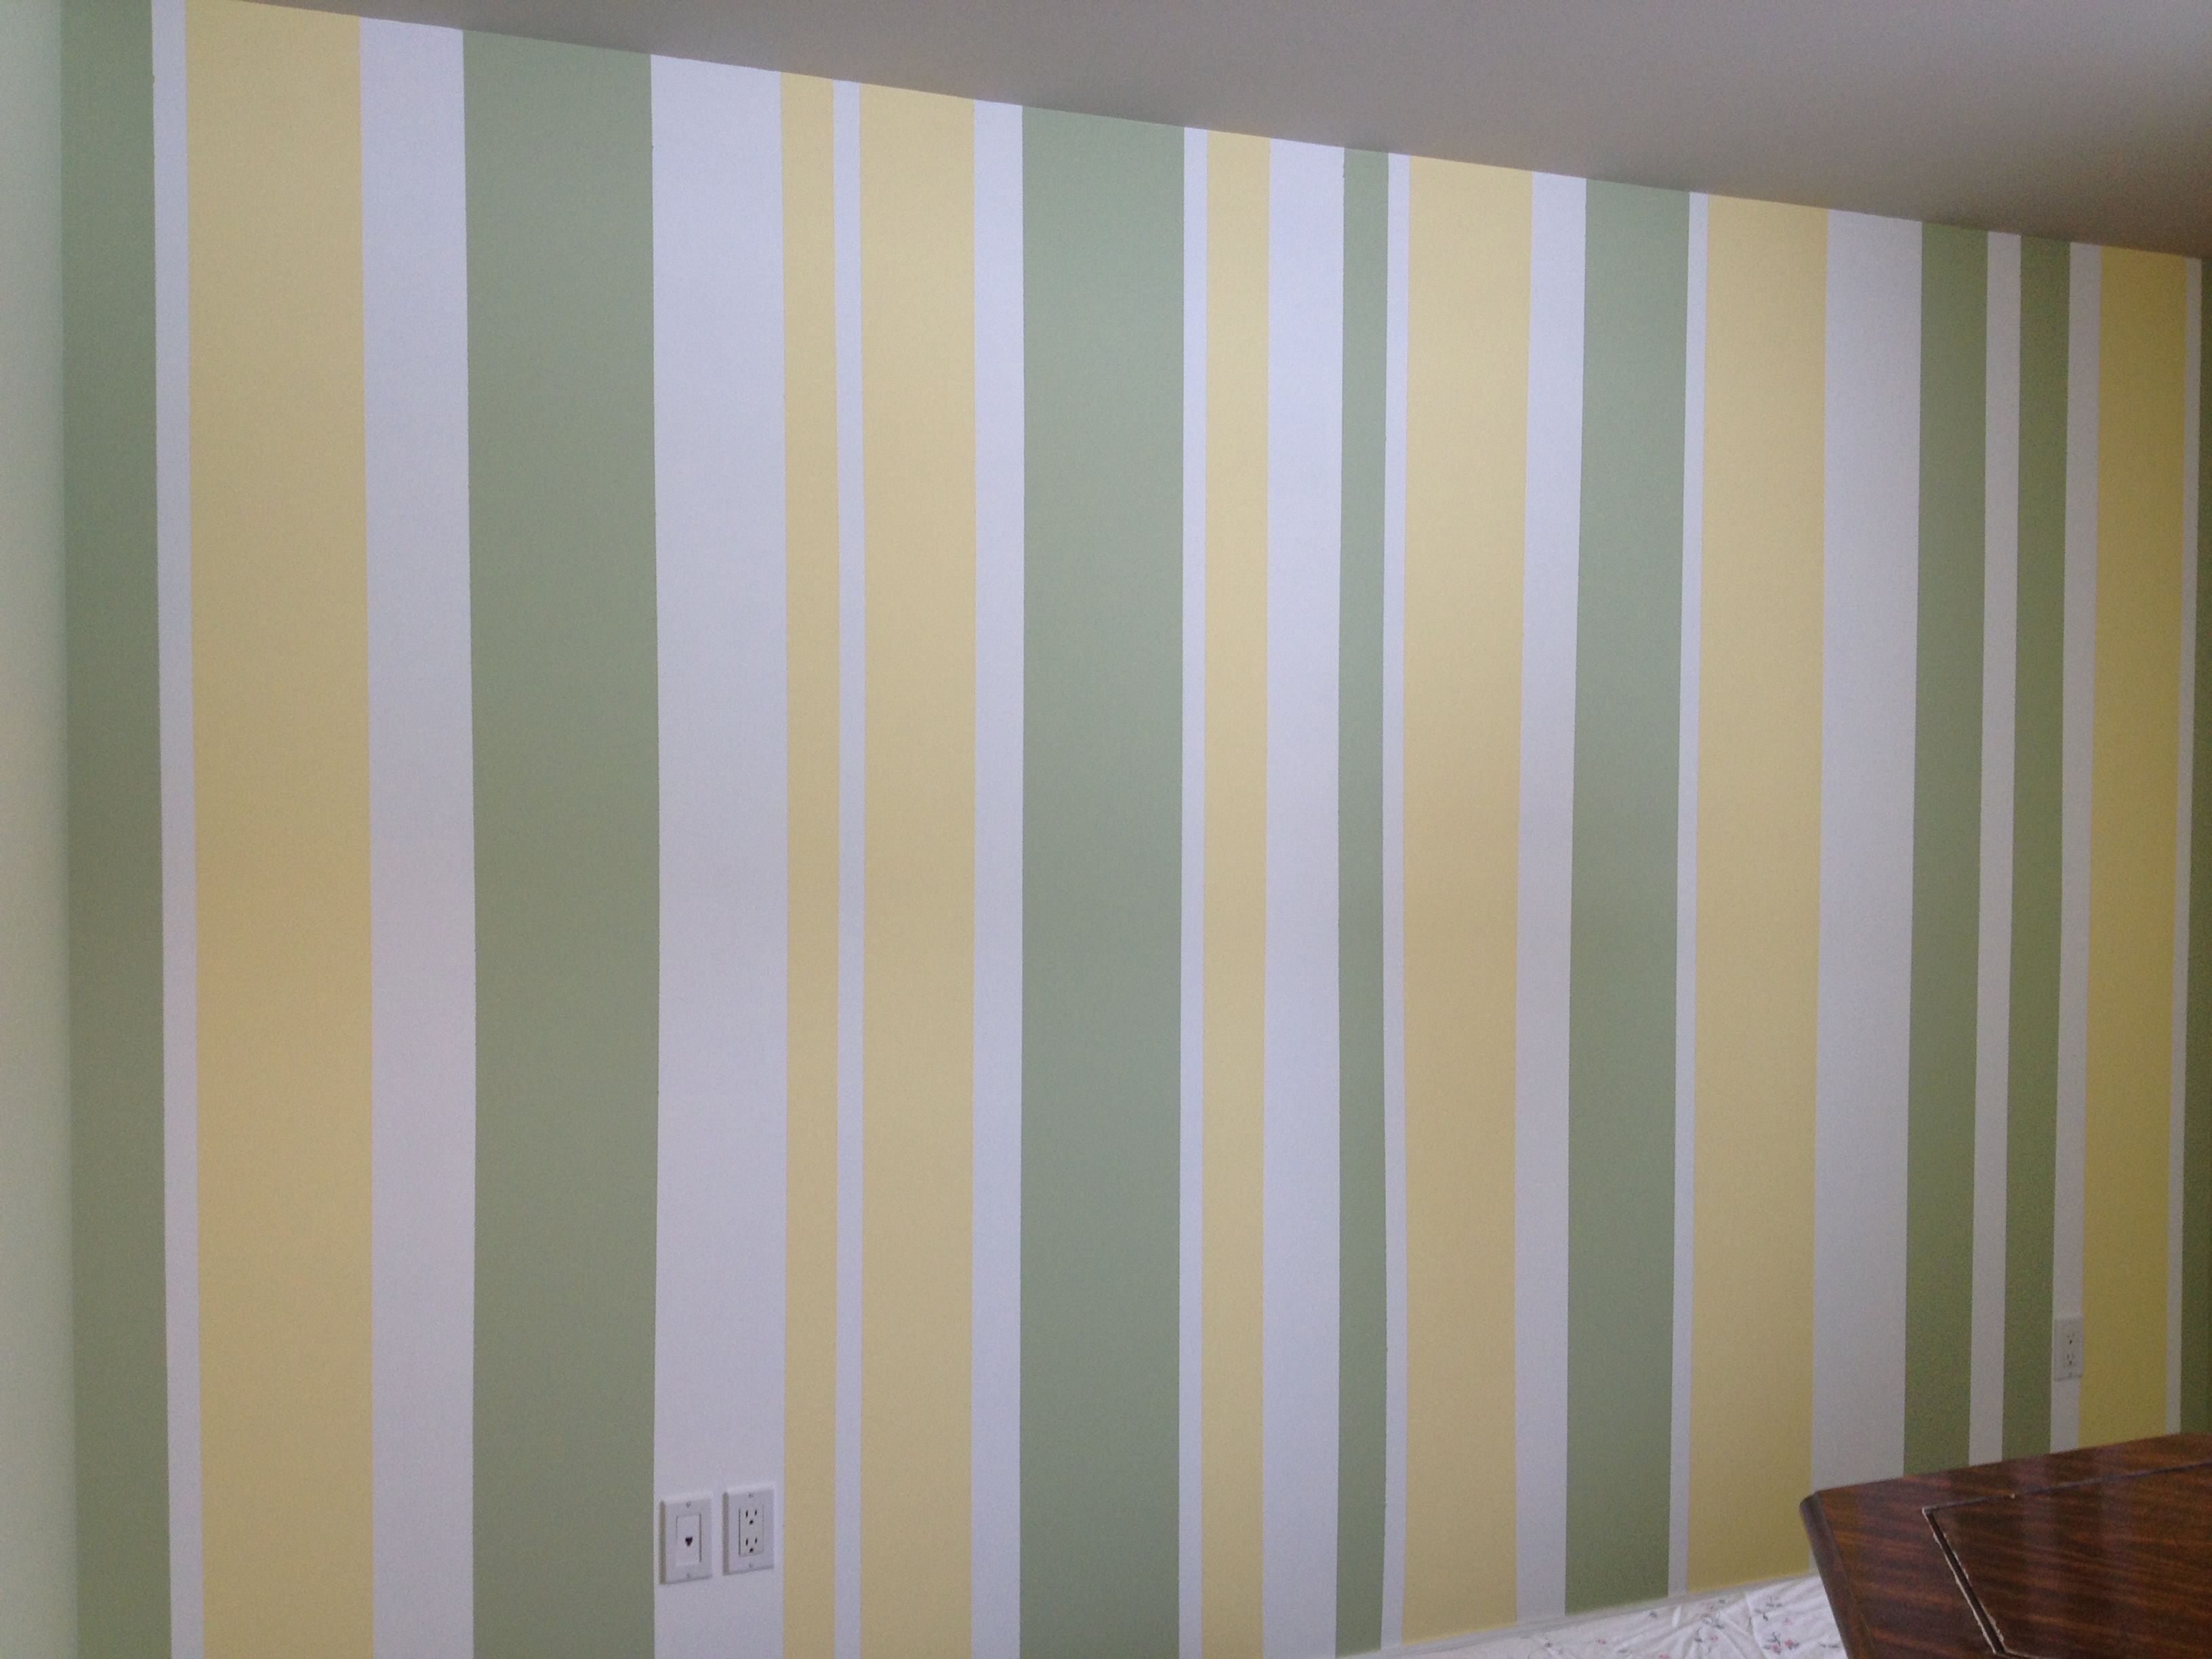 15 Awesome Striped Painted Wall Design And Decorating Ideas To